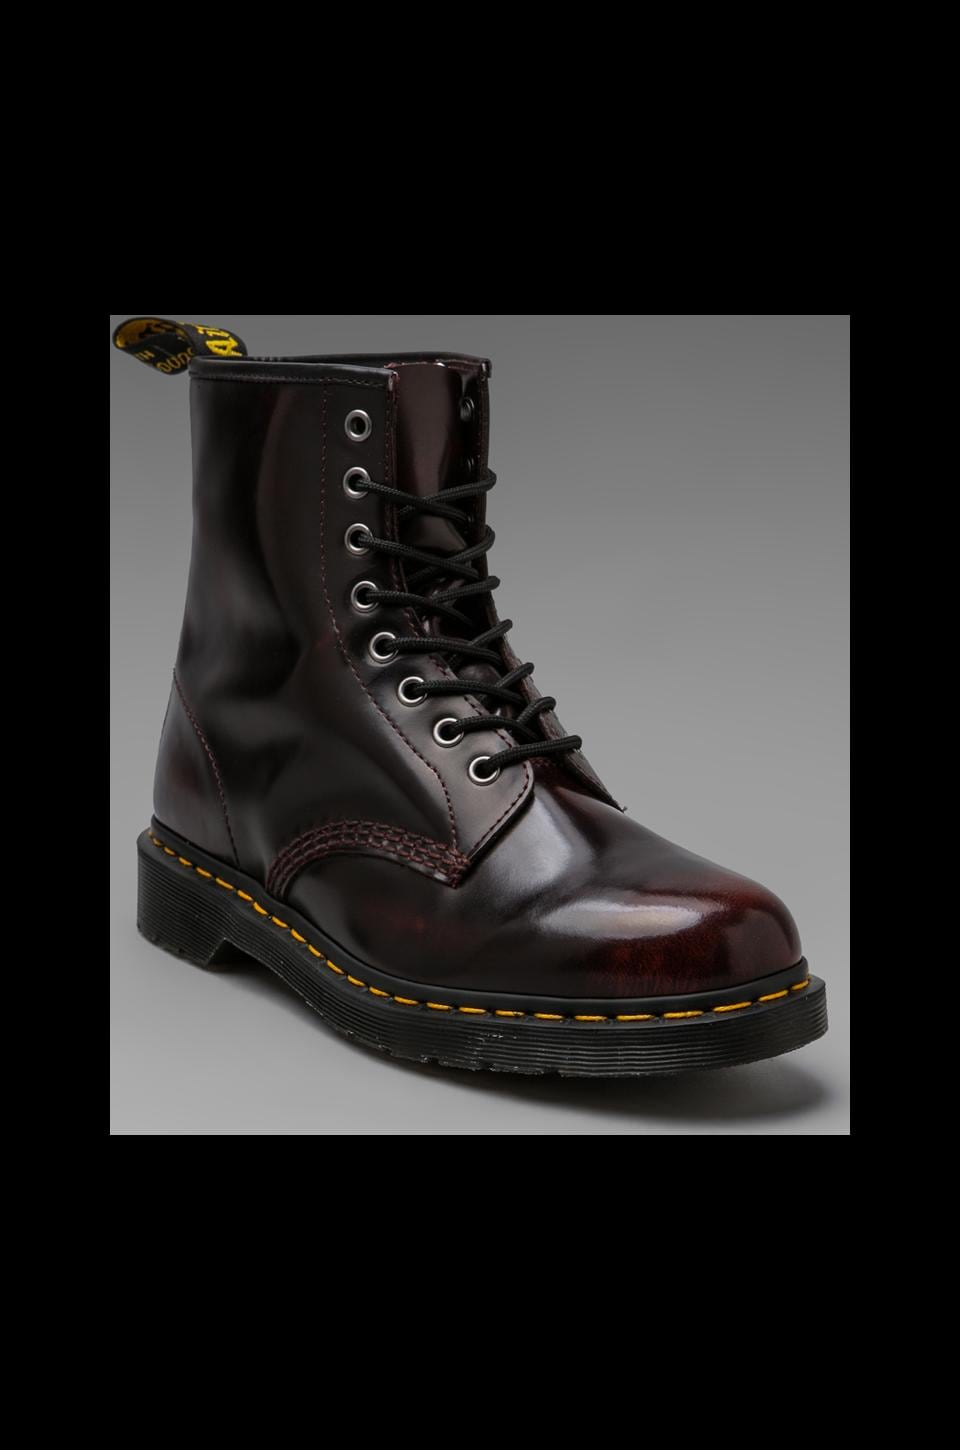 Dr. Martens 1460 8-Eye Boot in Cherry Red